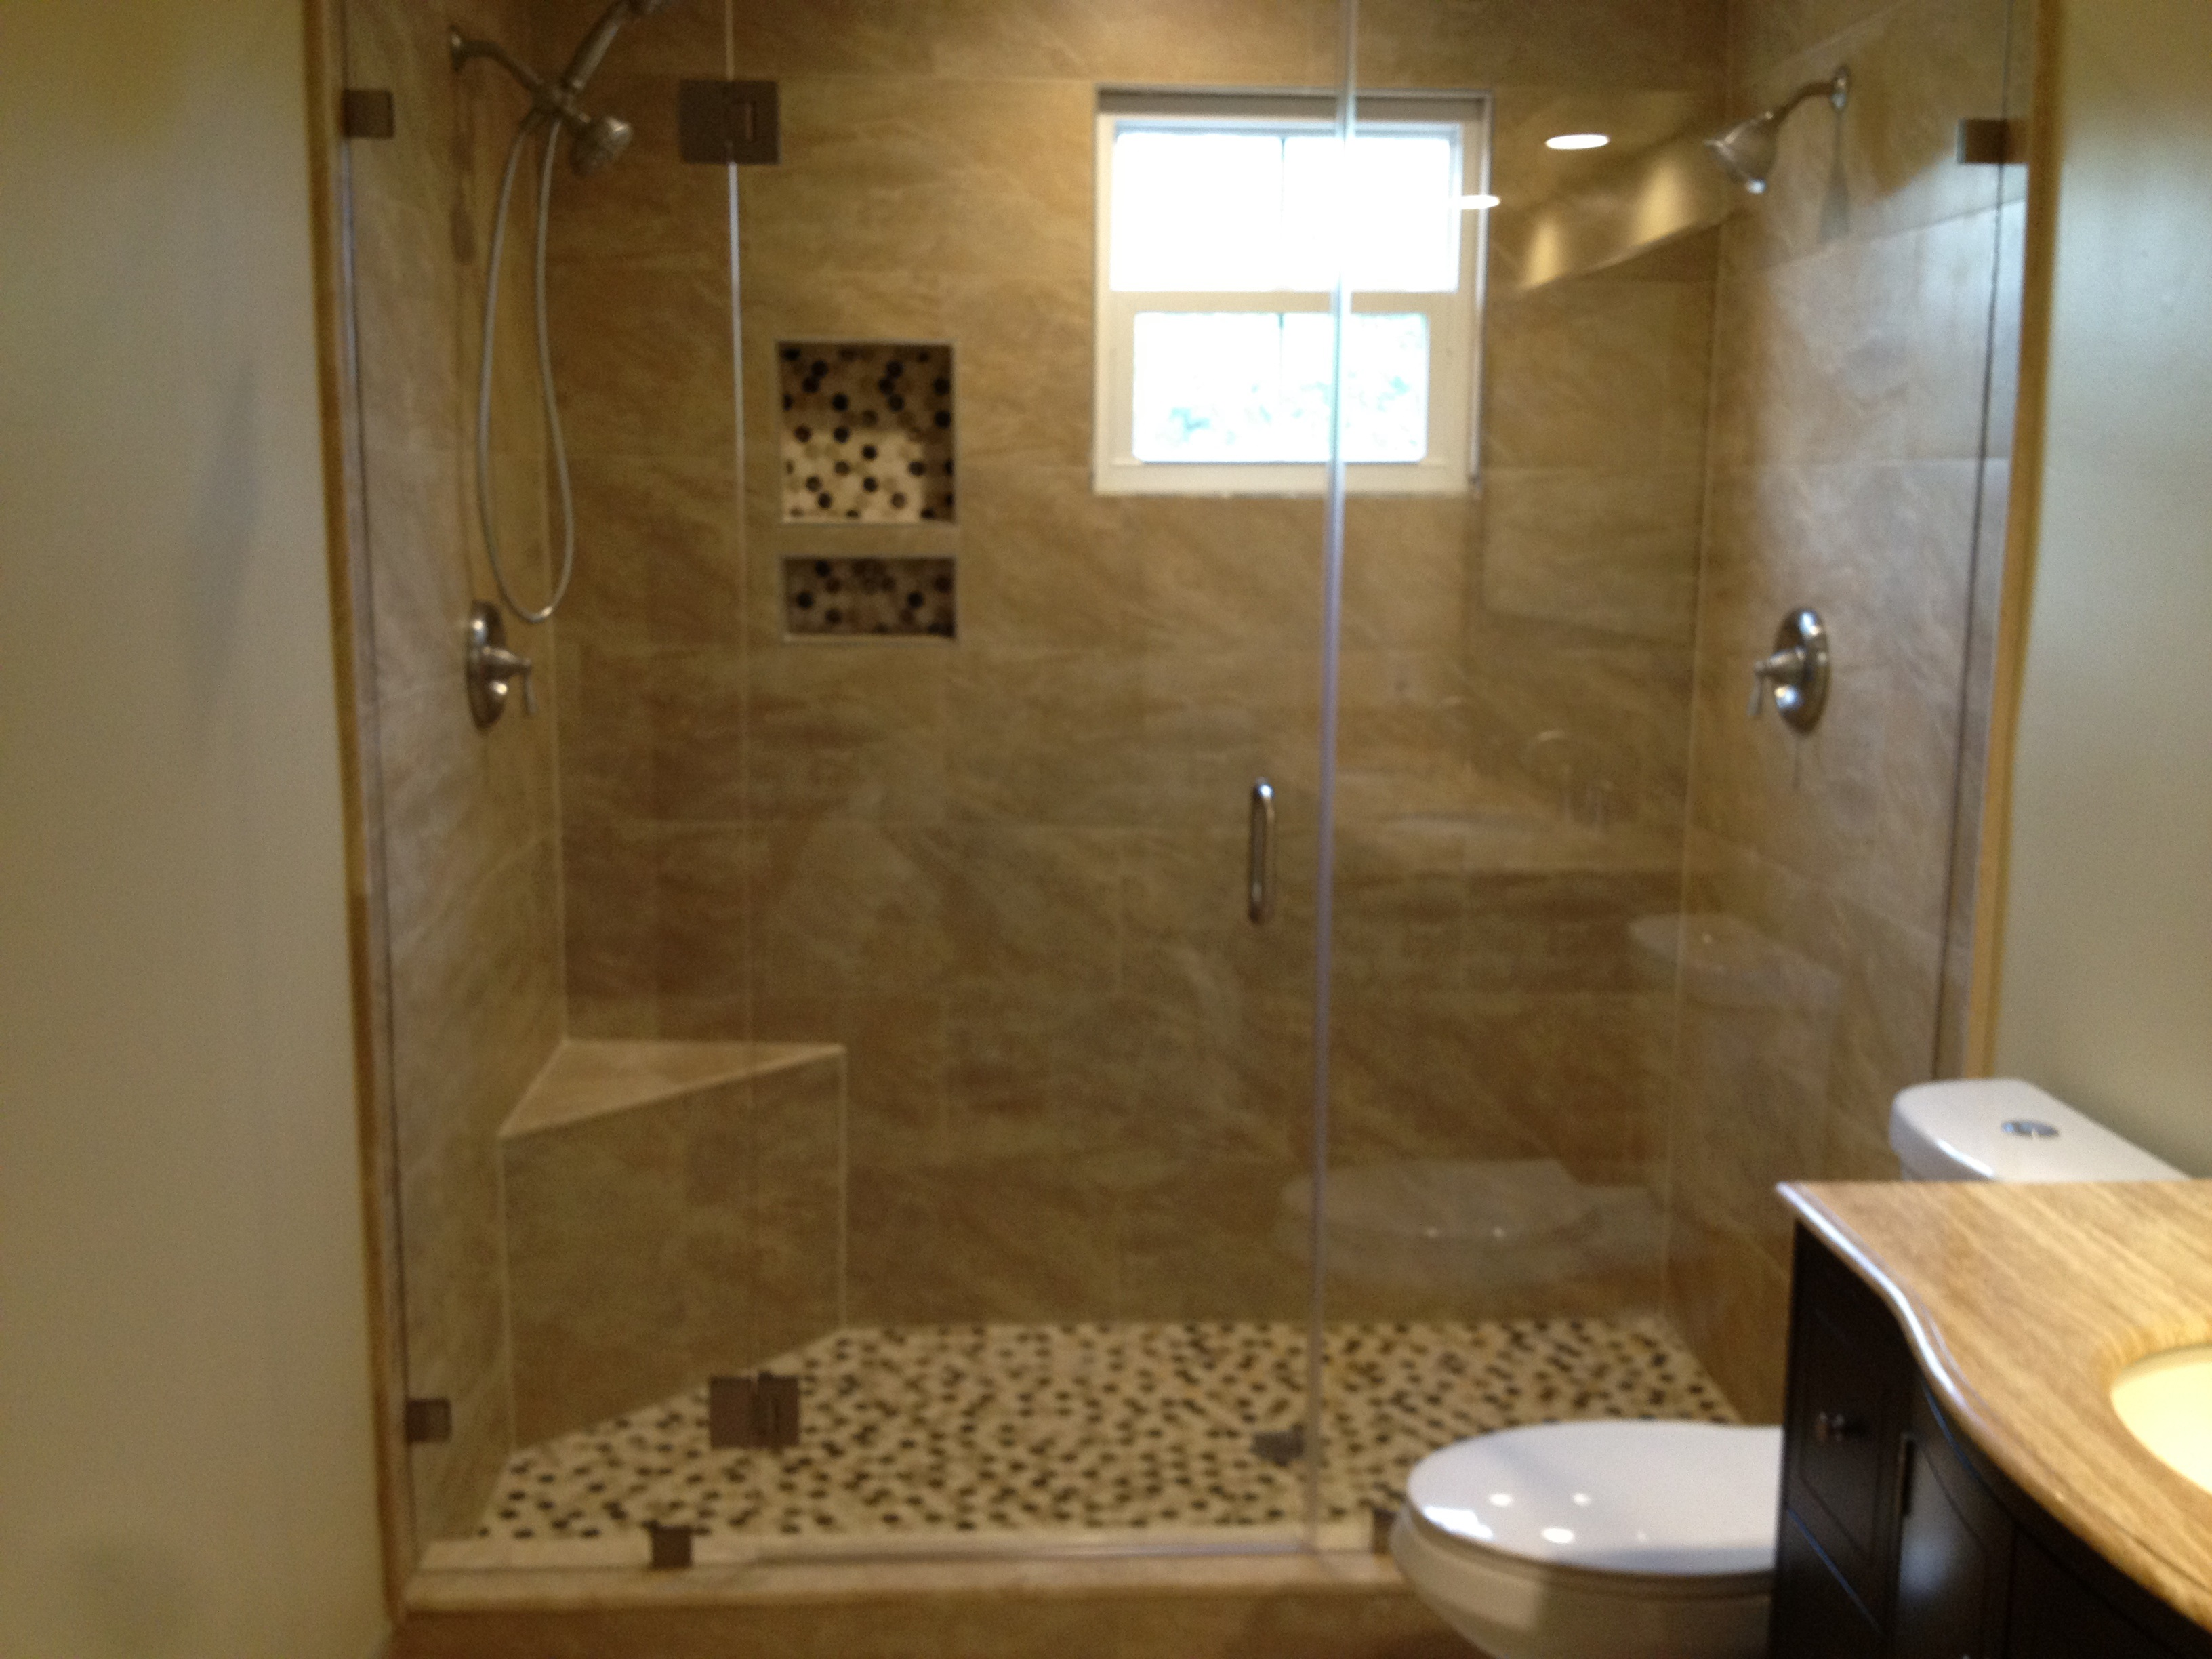 Frameless Shower Doors For Small Bathrooms.Frameless Shower Glass Doors